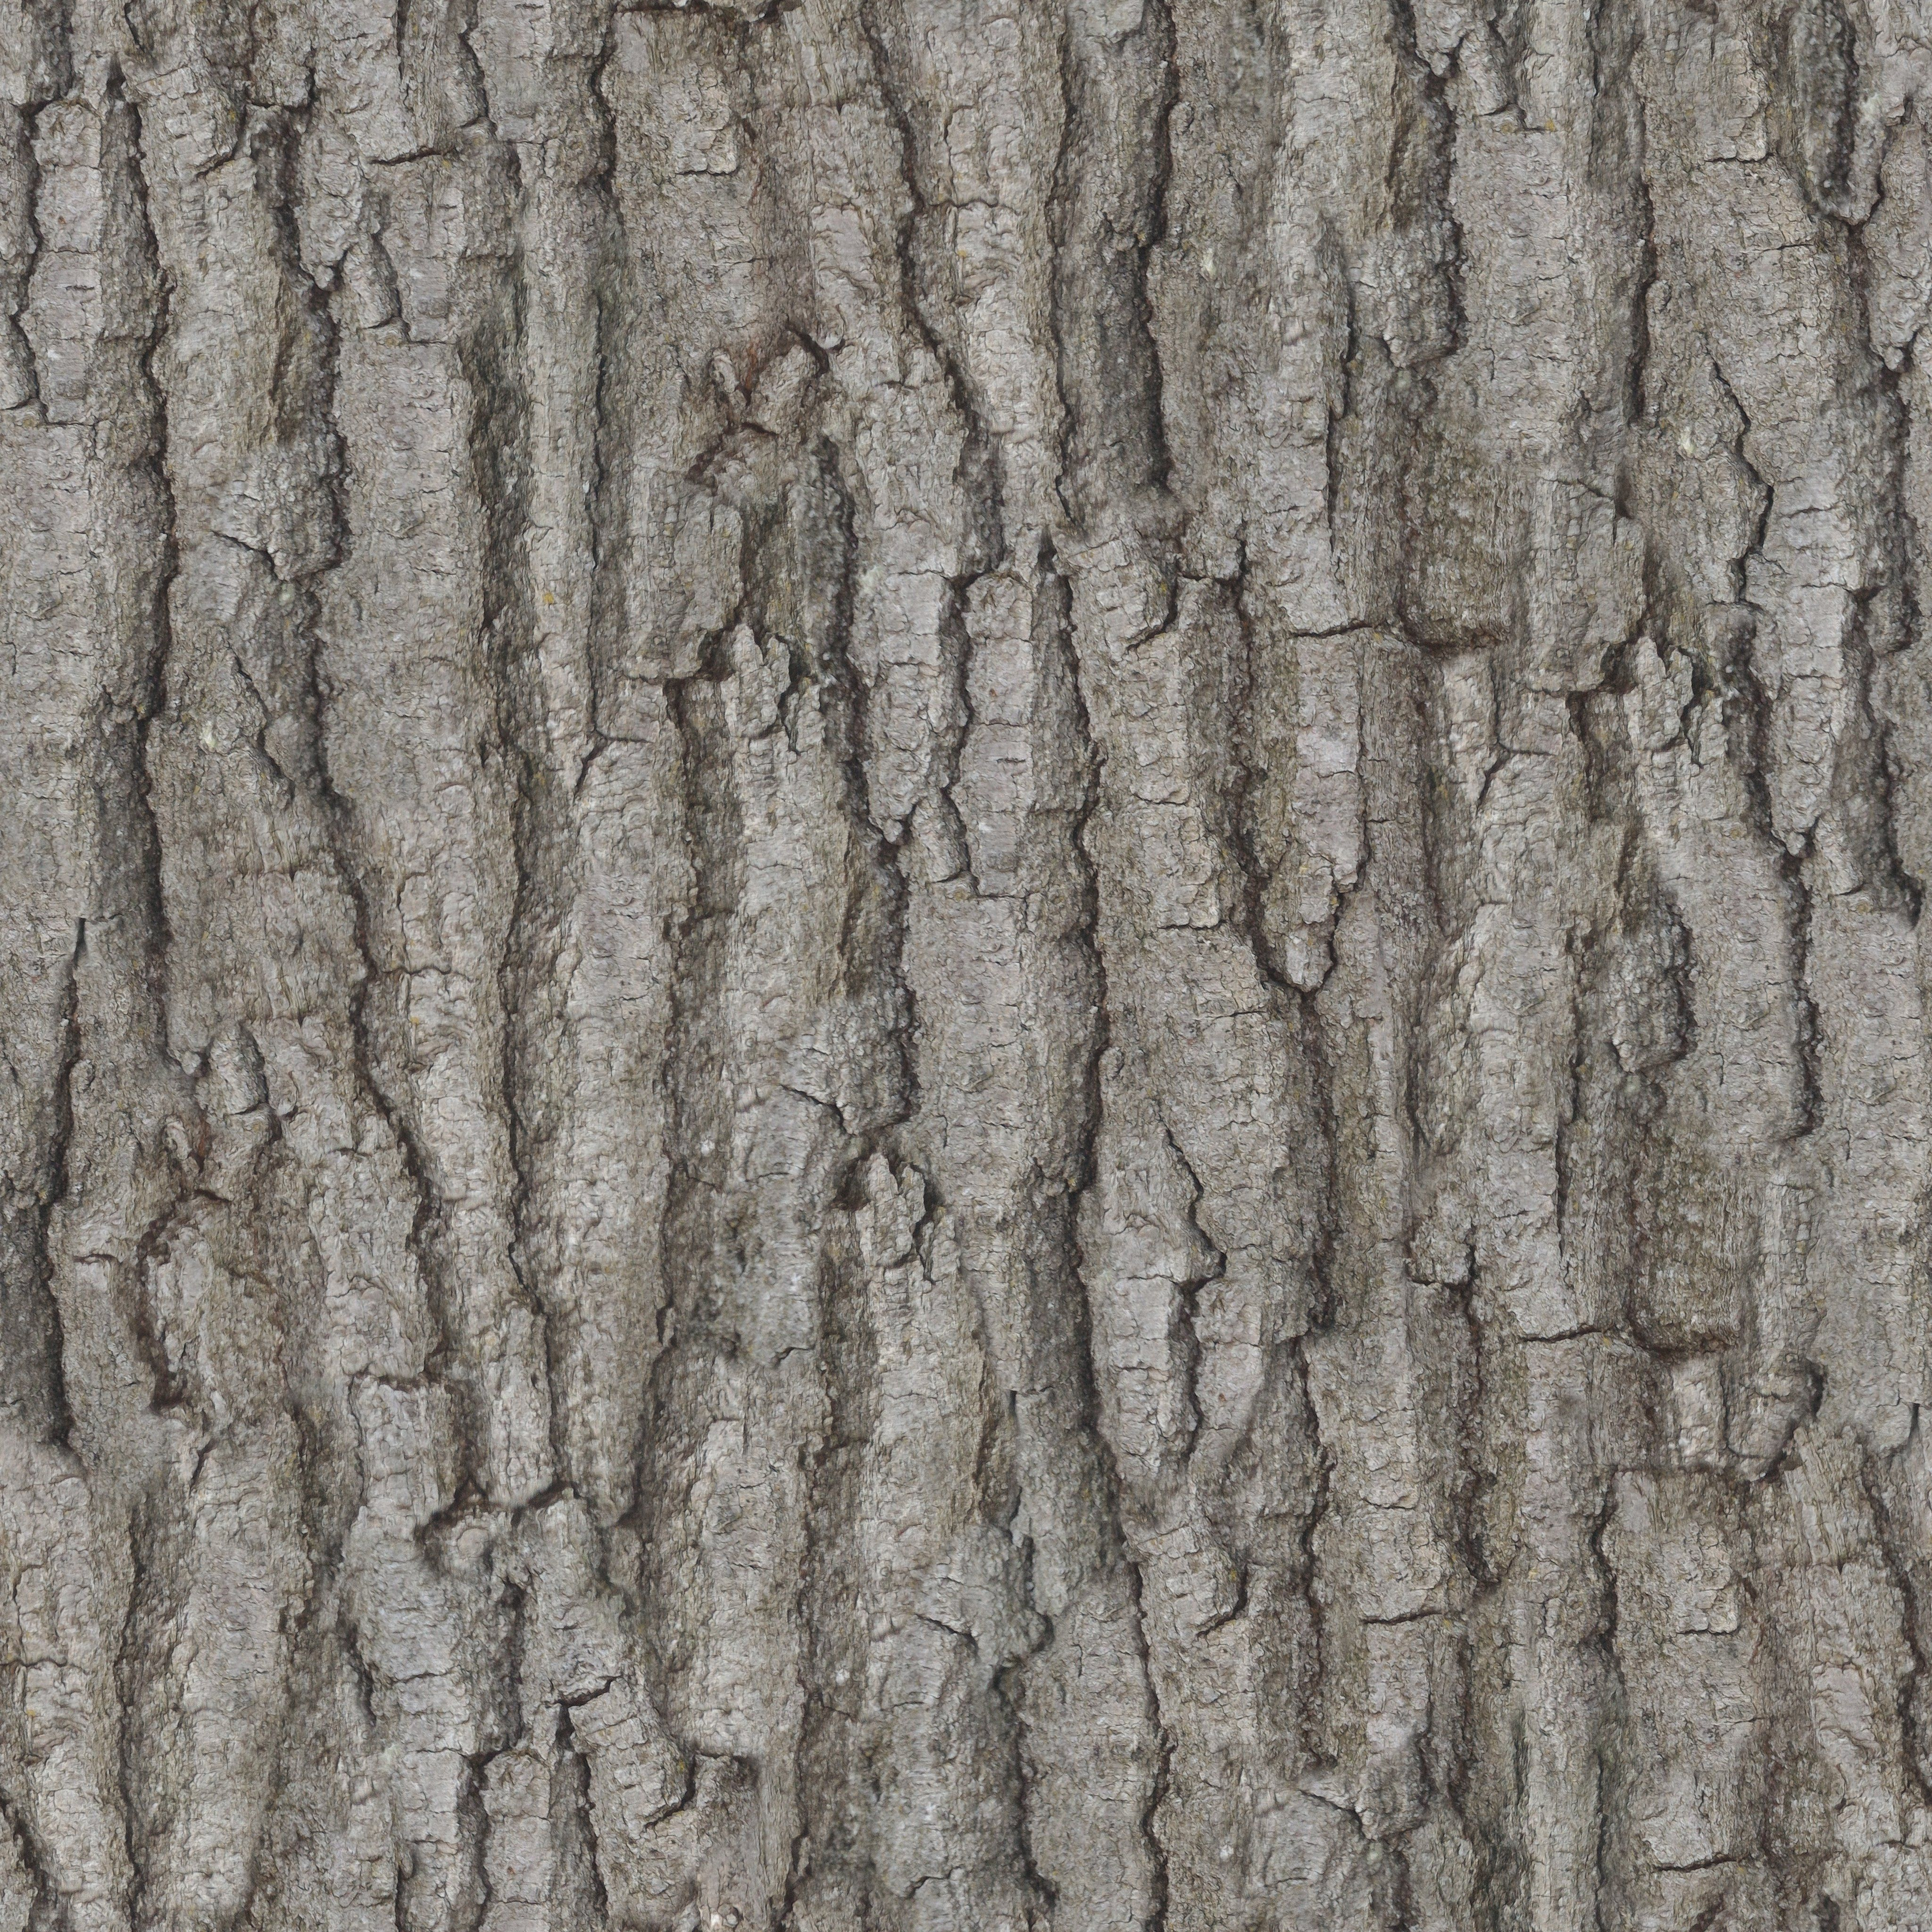 Zero Cc Tileable Bark Texture Photographed And Made By Me